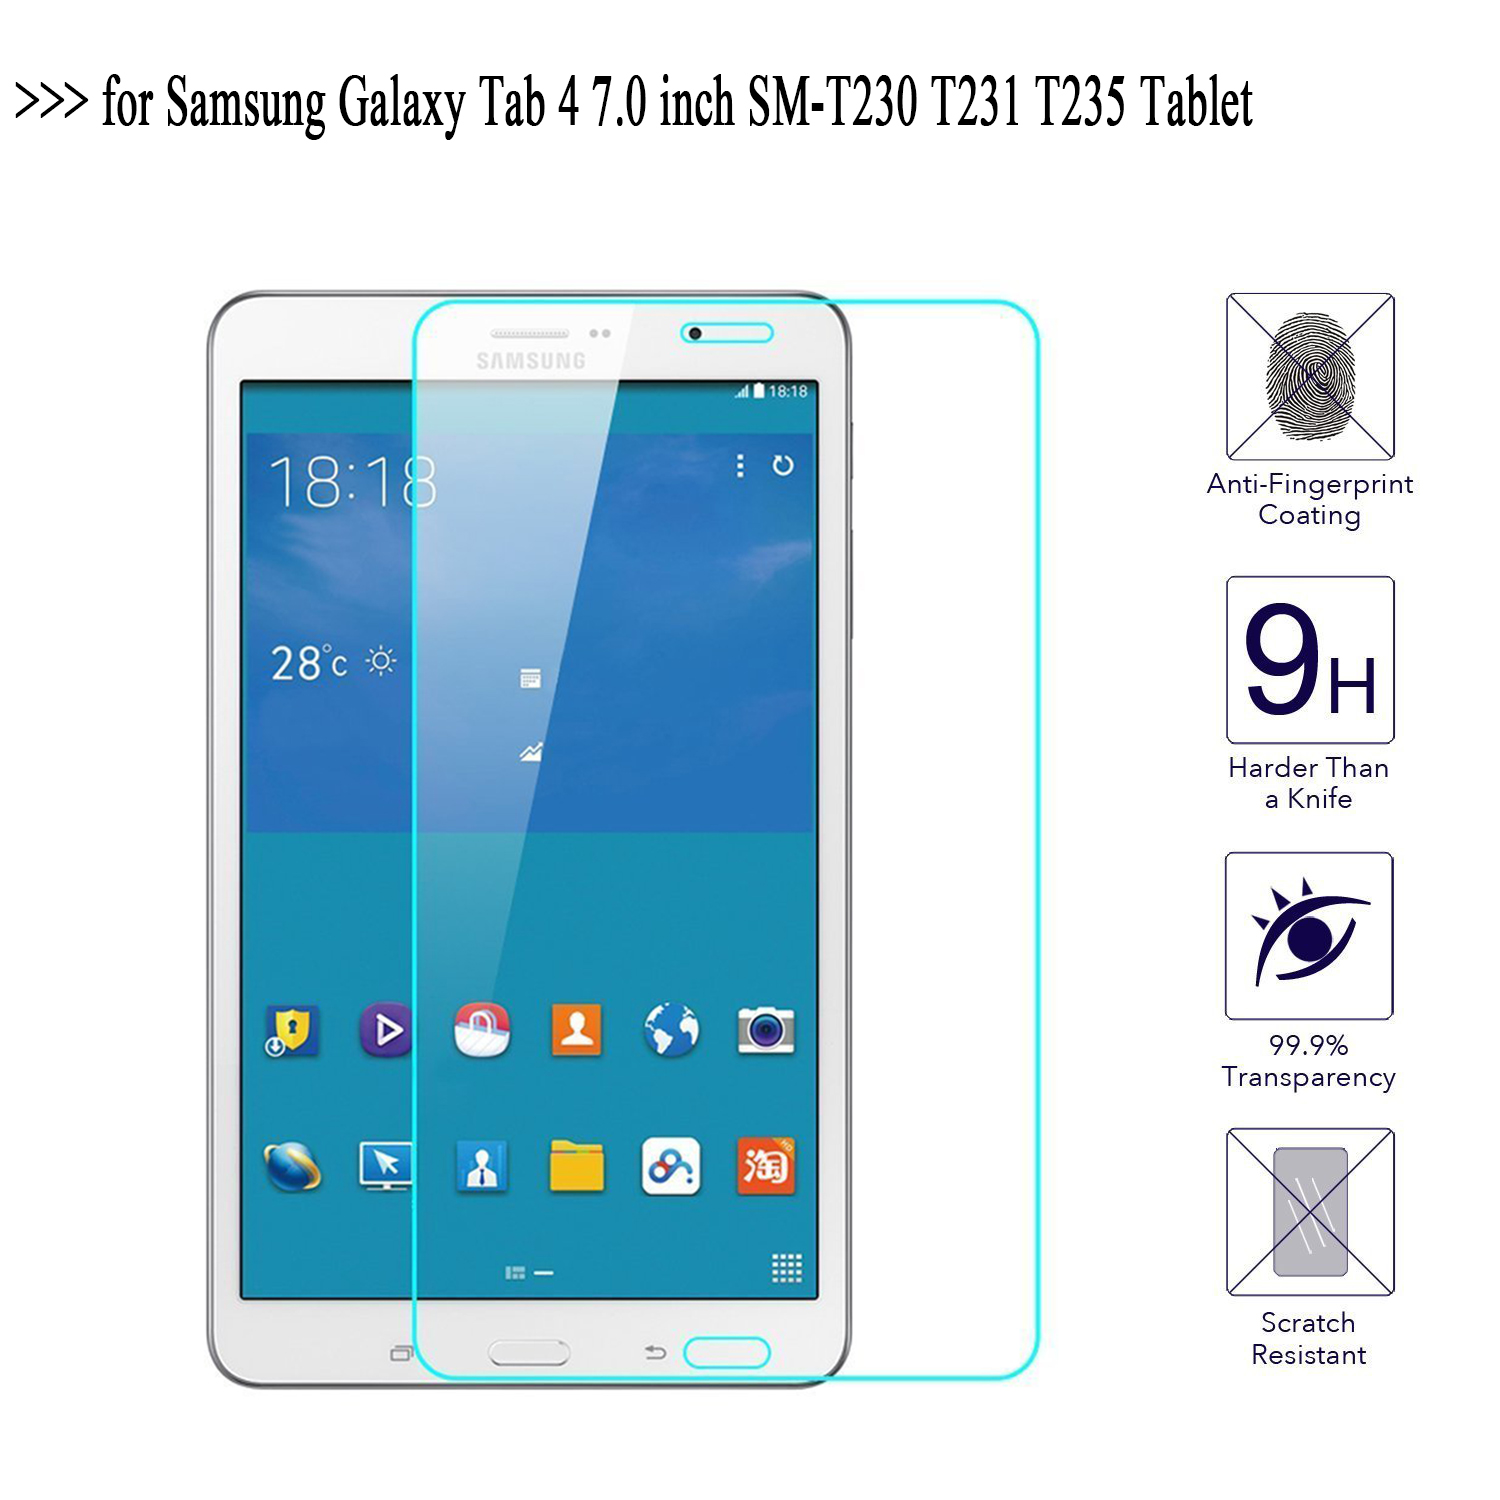 Tempered Glass Screen Protector for Samsung Galaxy Tab 4 7.0 T230 SM-T230 3